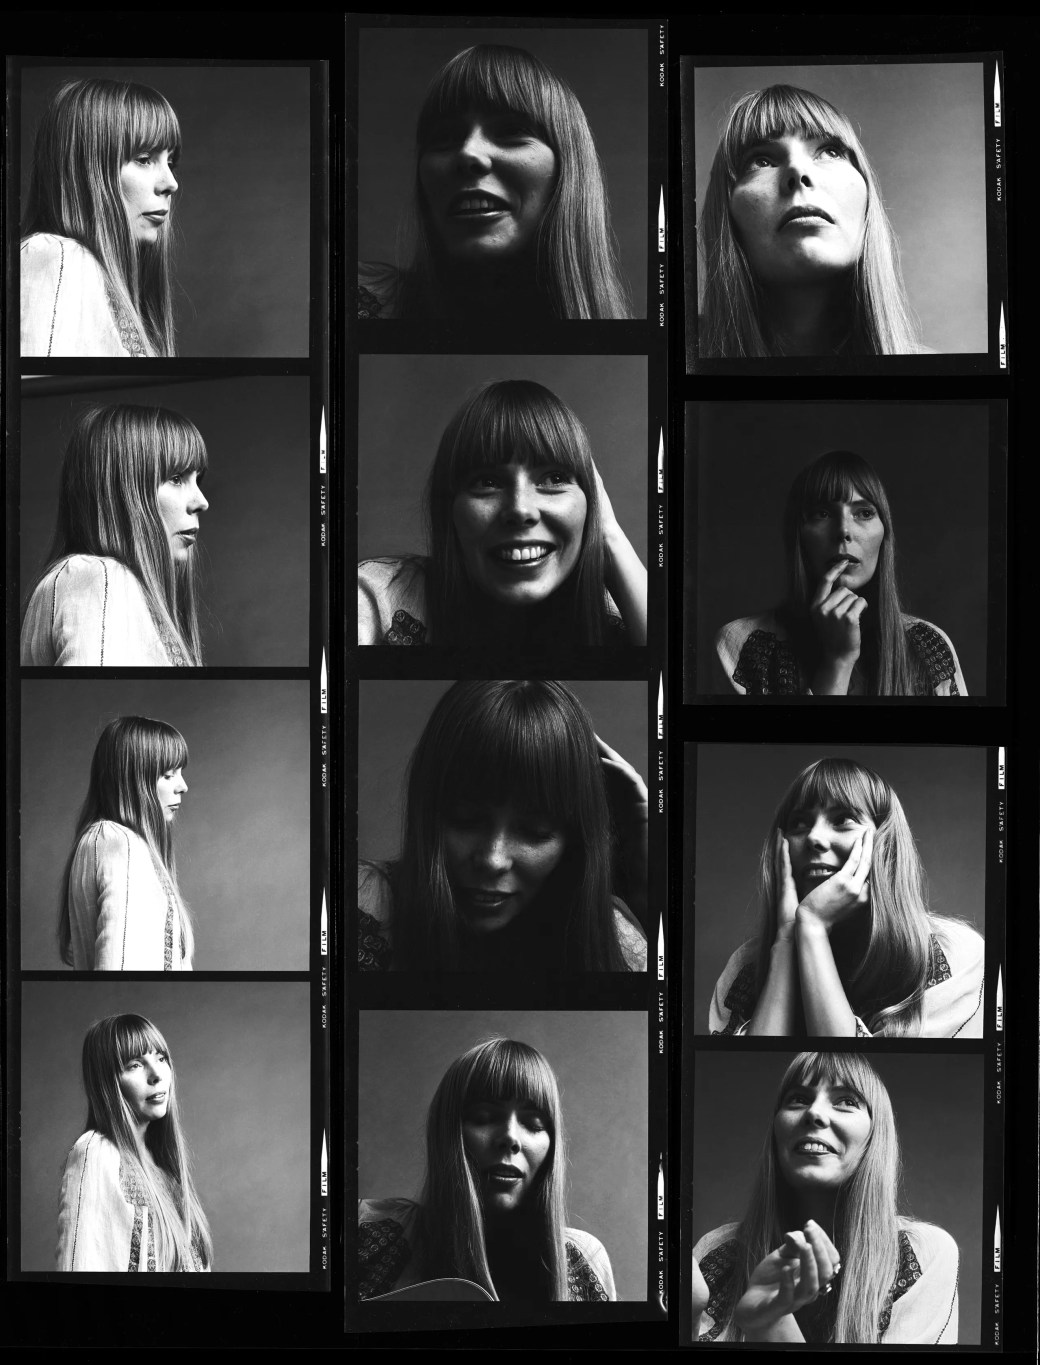 Contact sheet of portraits of Joni Mitchell.